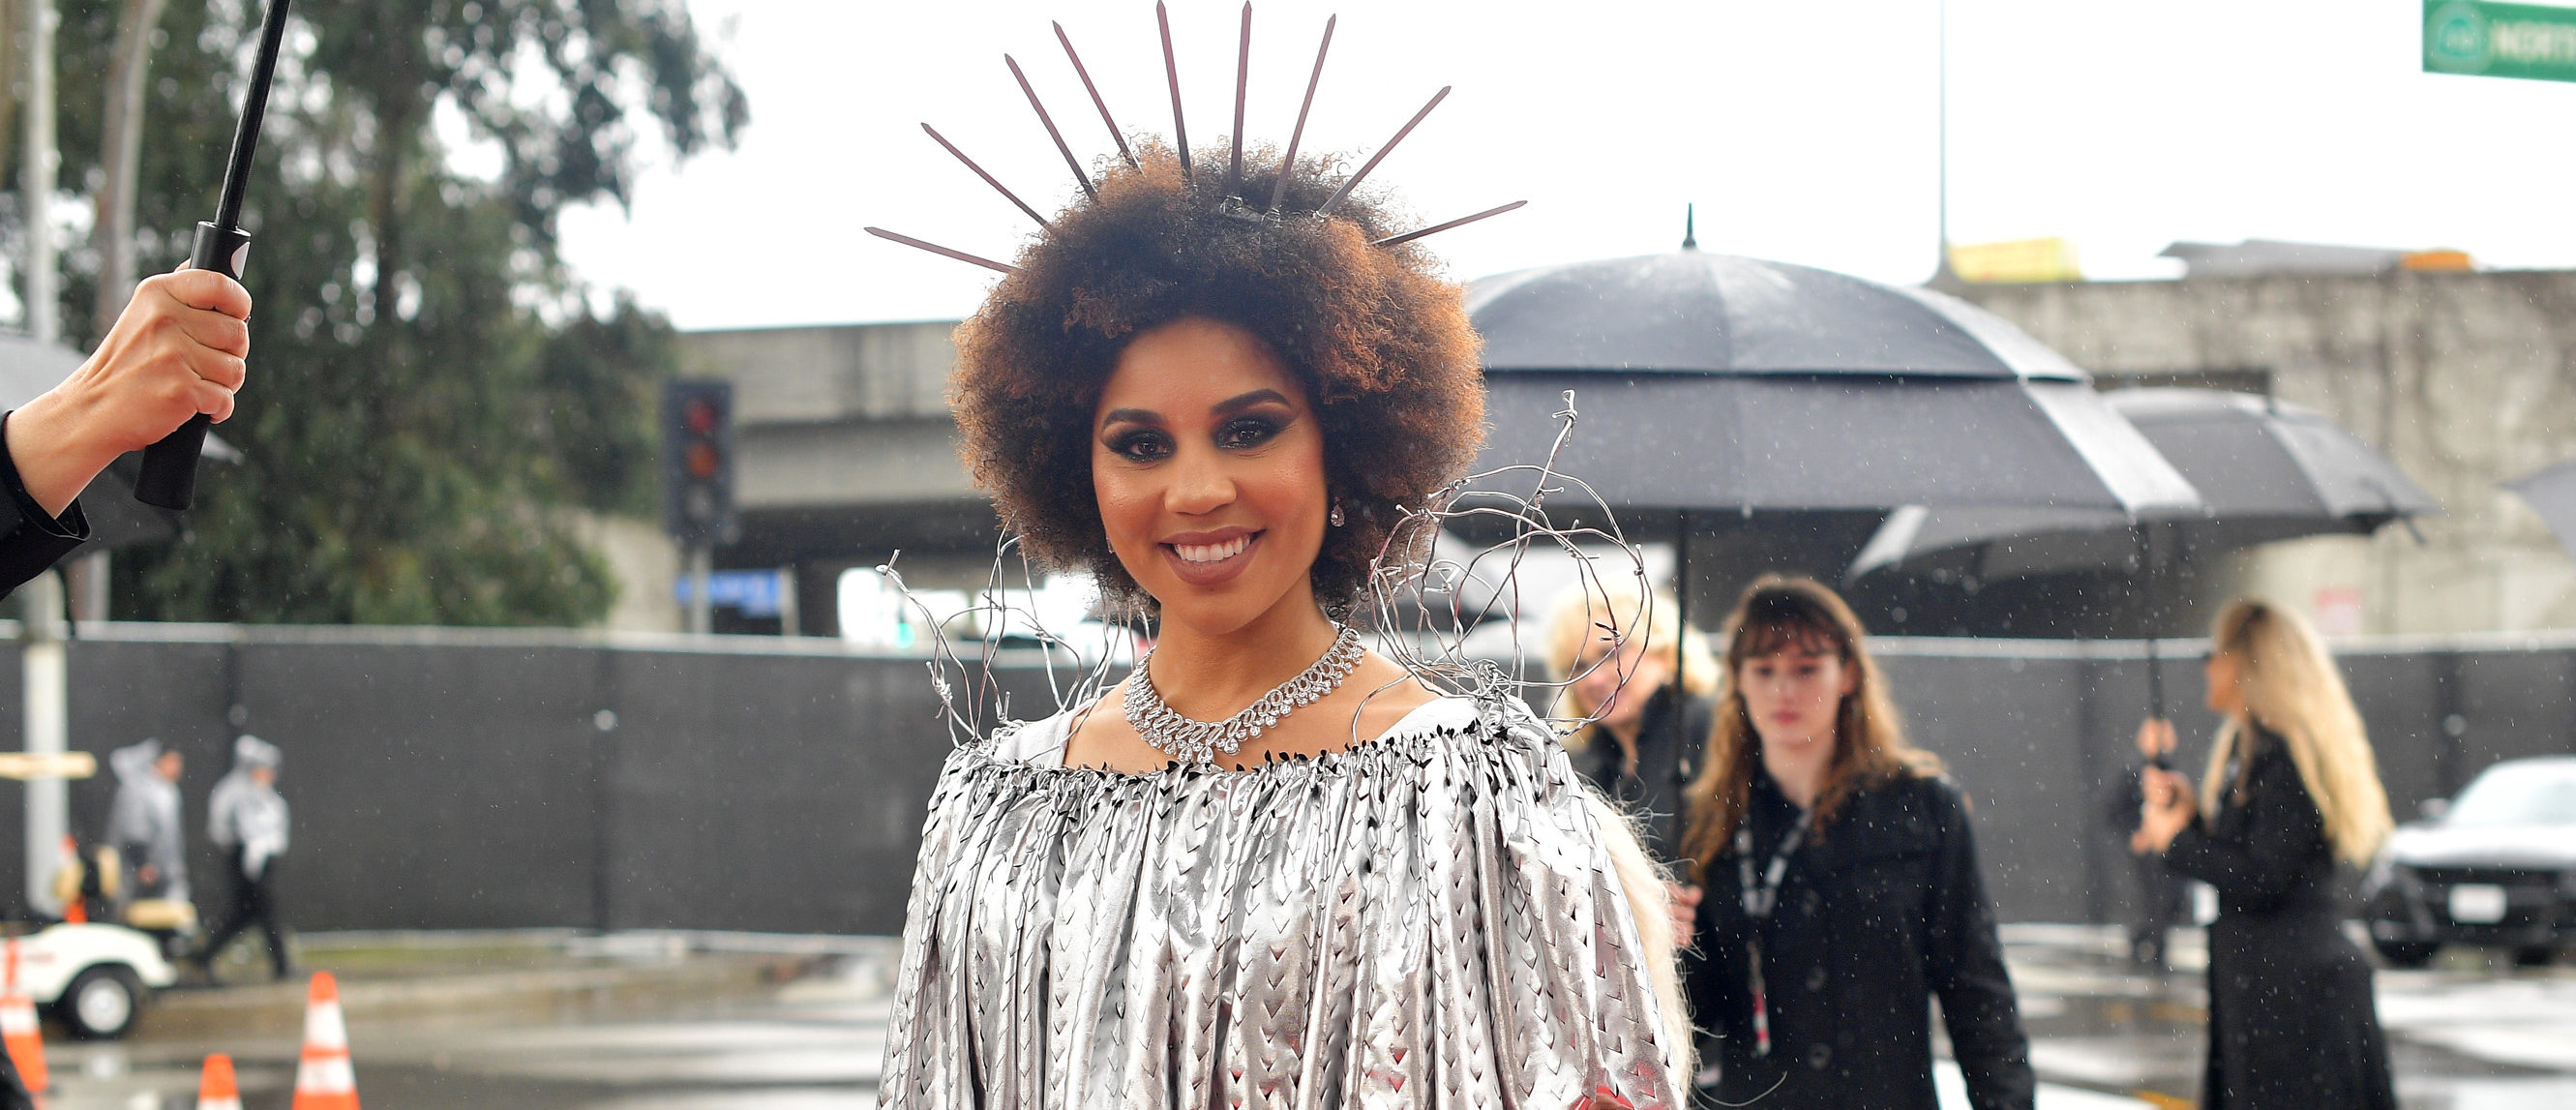 Joy Villa attends the 61st Annual GRAMMY Awards at Staples Center on February 10, 2019 in Los Angeles, California. (Photo by Matt Winkelmeyer/Getty Images for The Recording Academy)